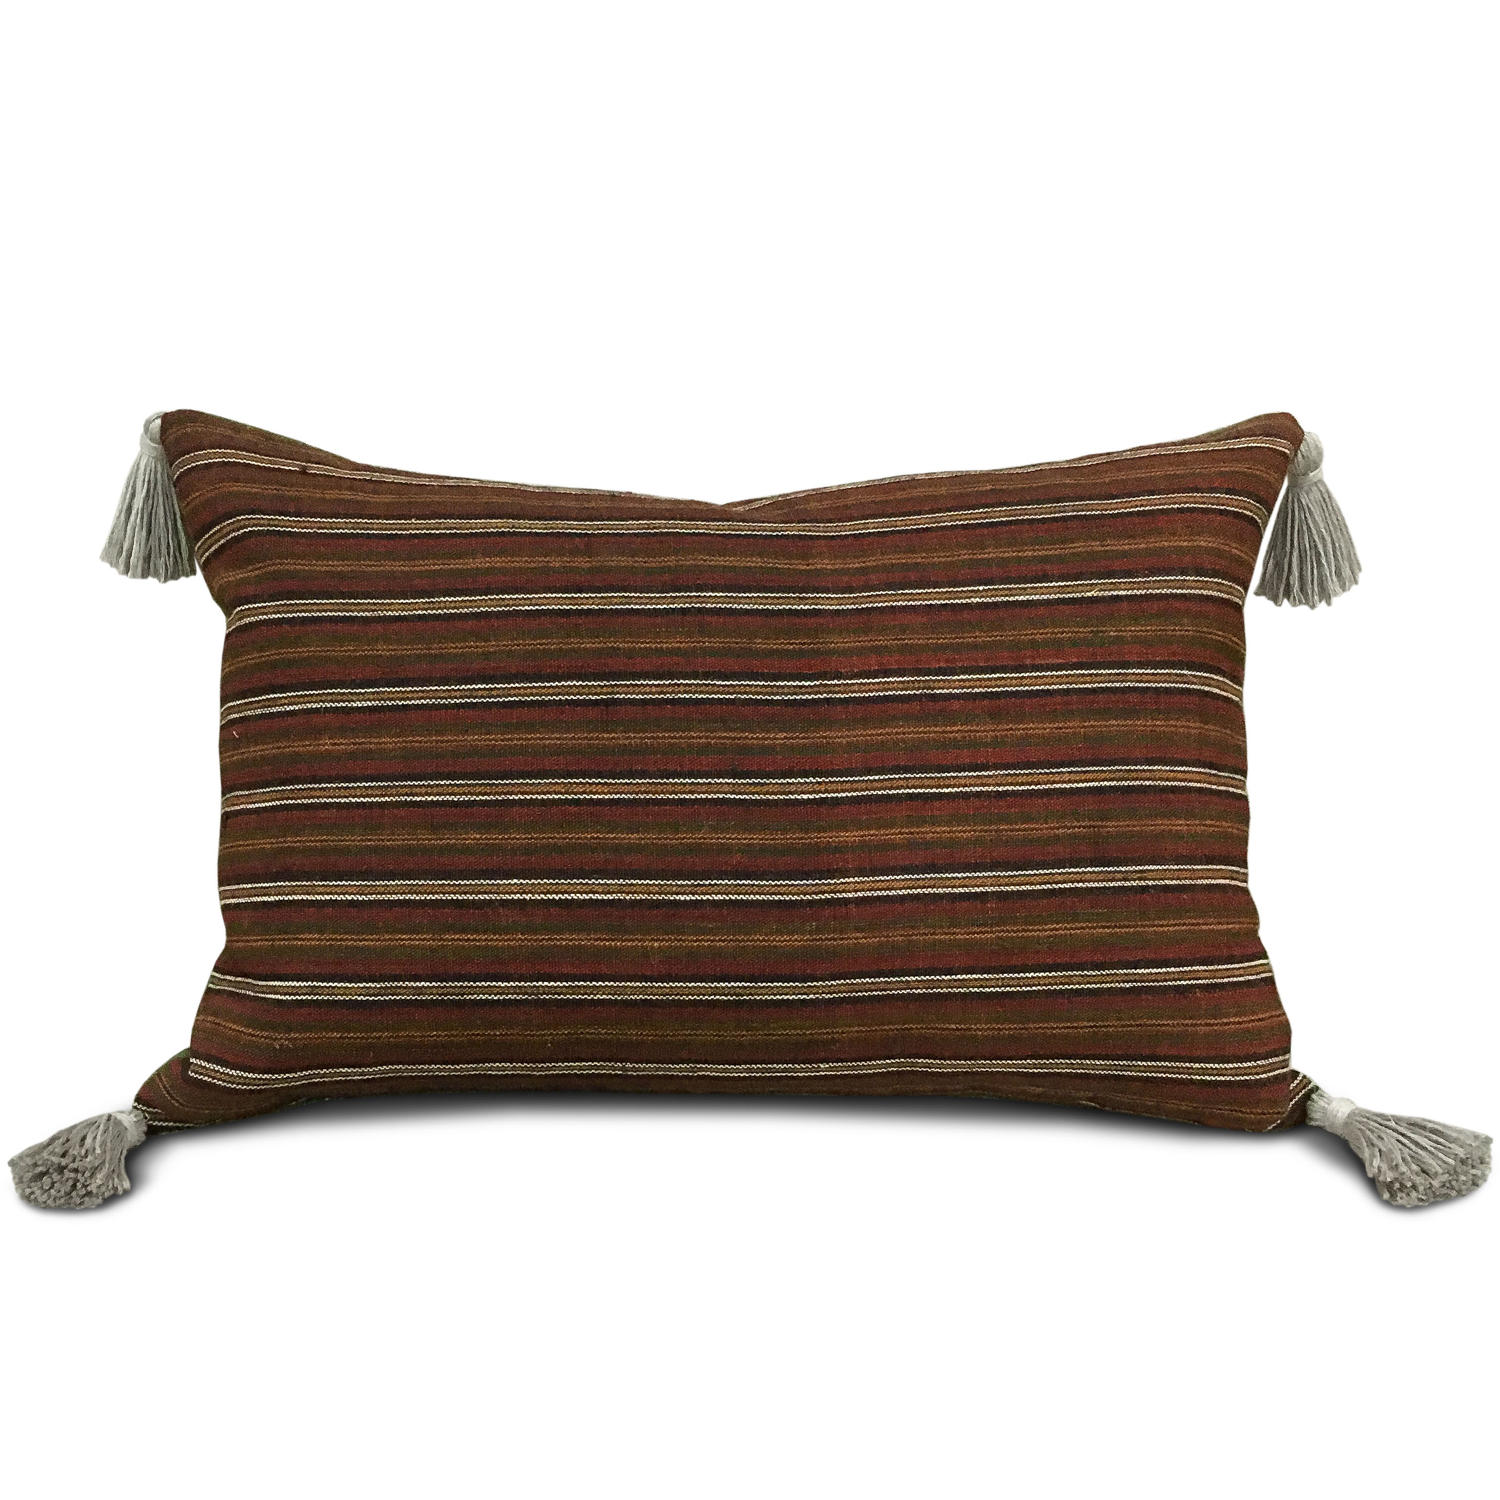 C19 Hemp Striped Cushions